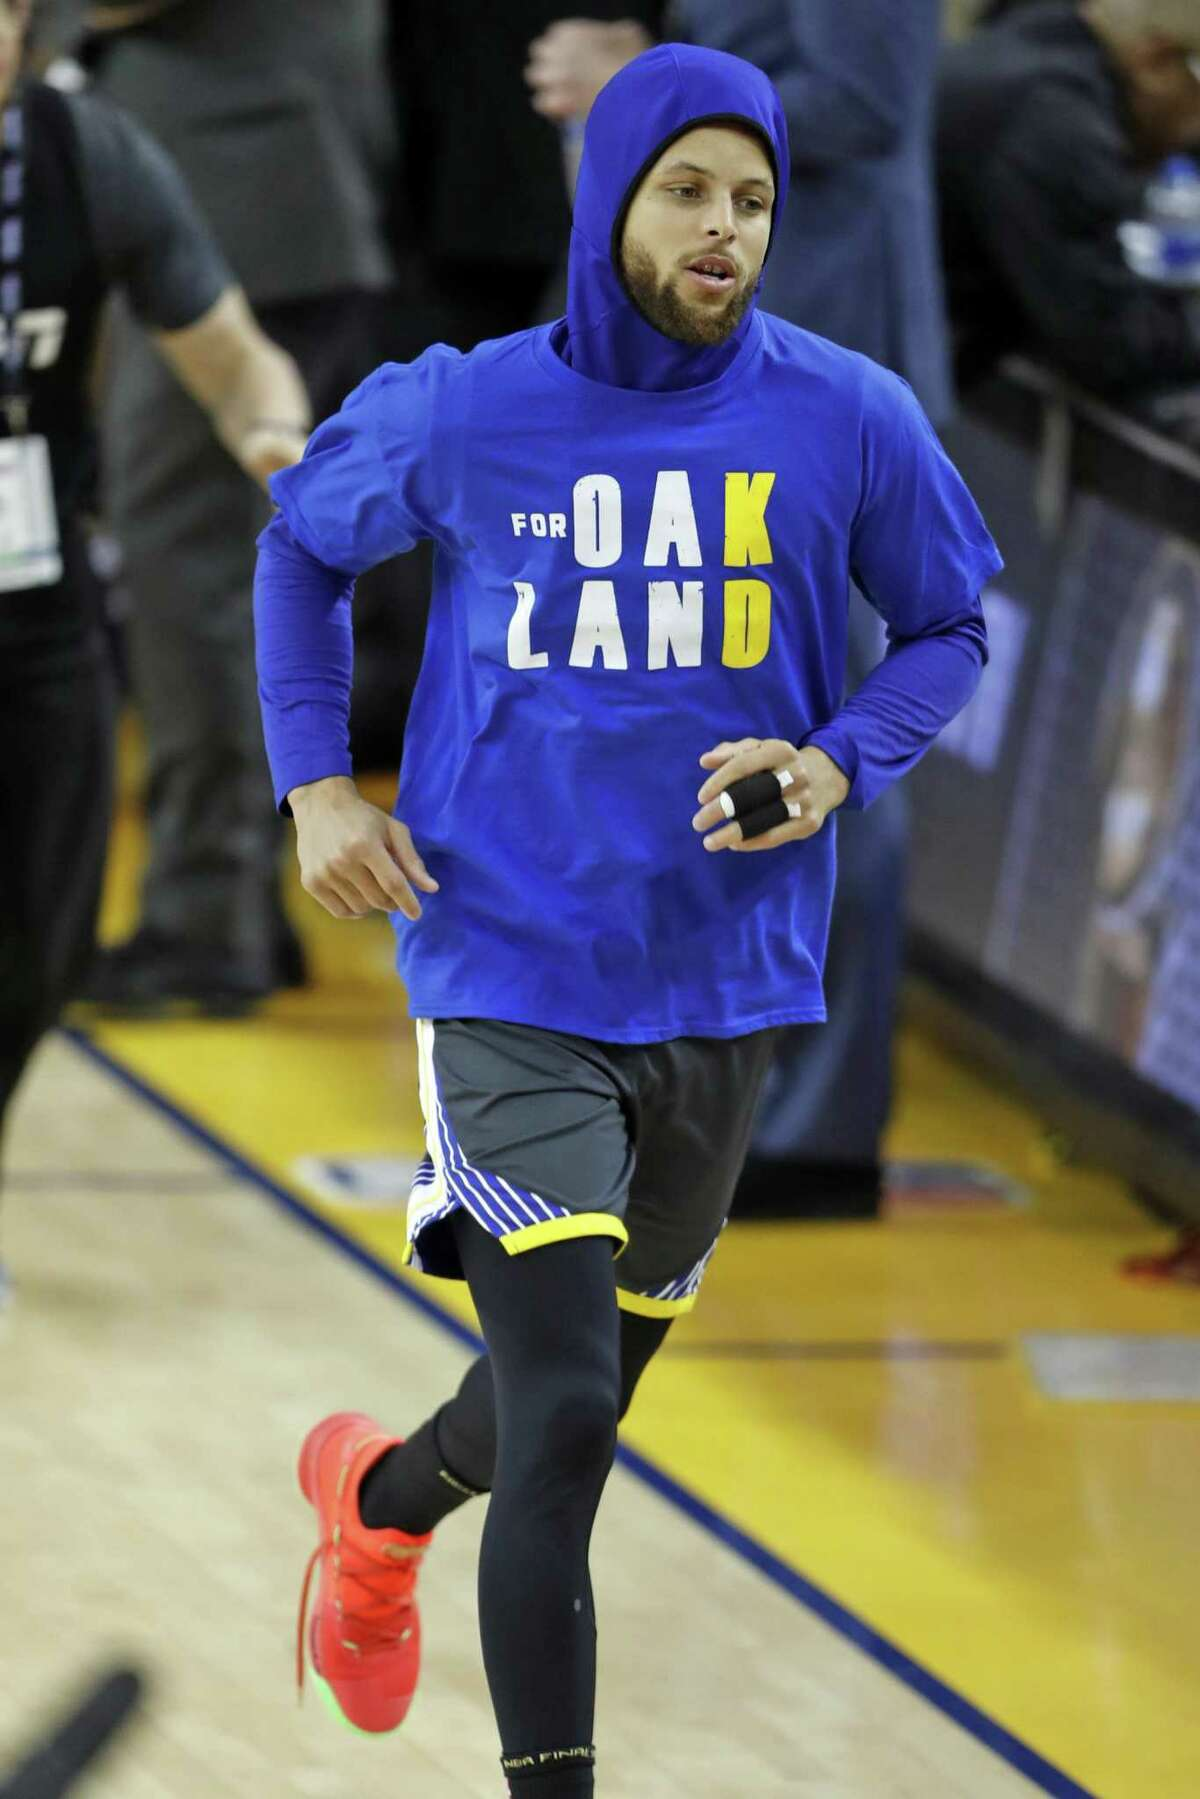 Golden State Warriors' Stephen Curry arrives for warm ups wearing a t-shirt honoring Oakland and Kevin Durant before playing Toronto Raptors in Game 6 of NBA Finals at Oracle Arena in Oakland, Calif., on Thursday, June 13, 2019.